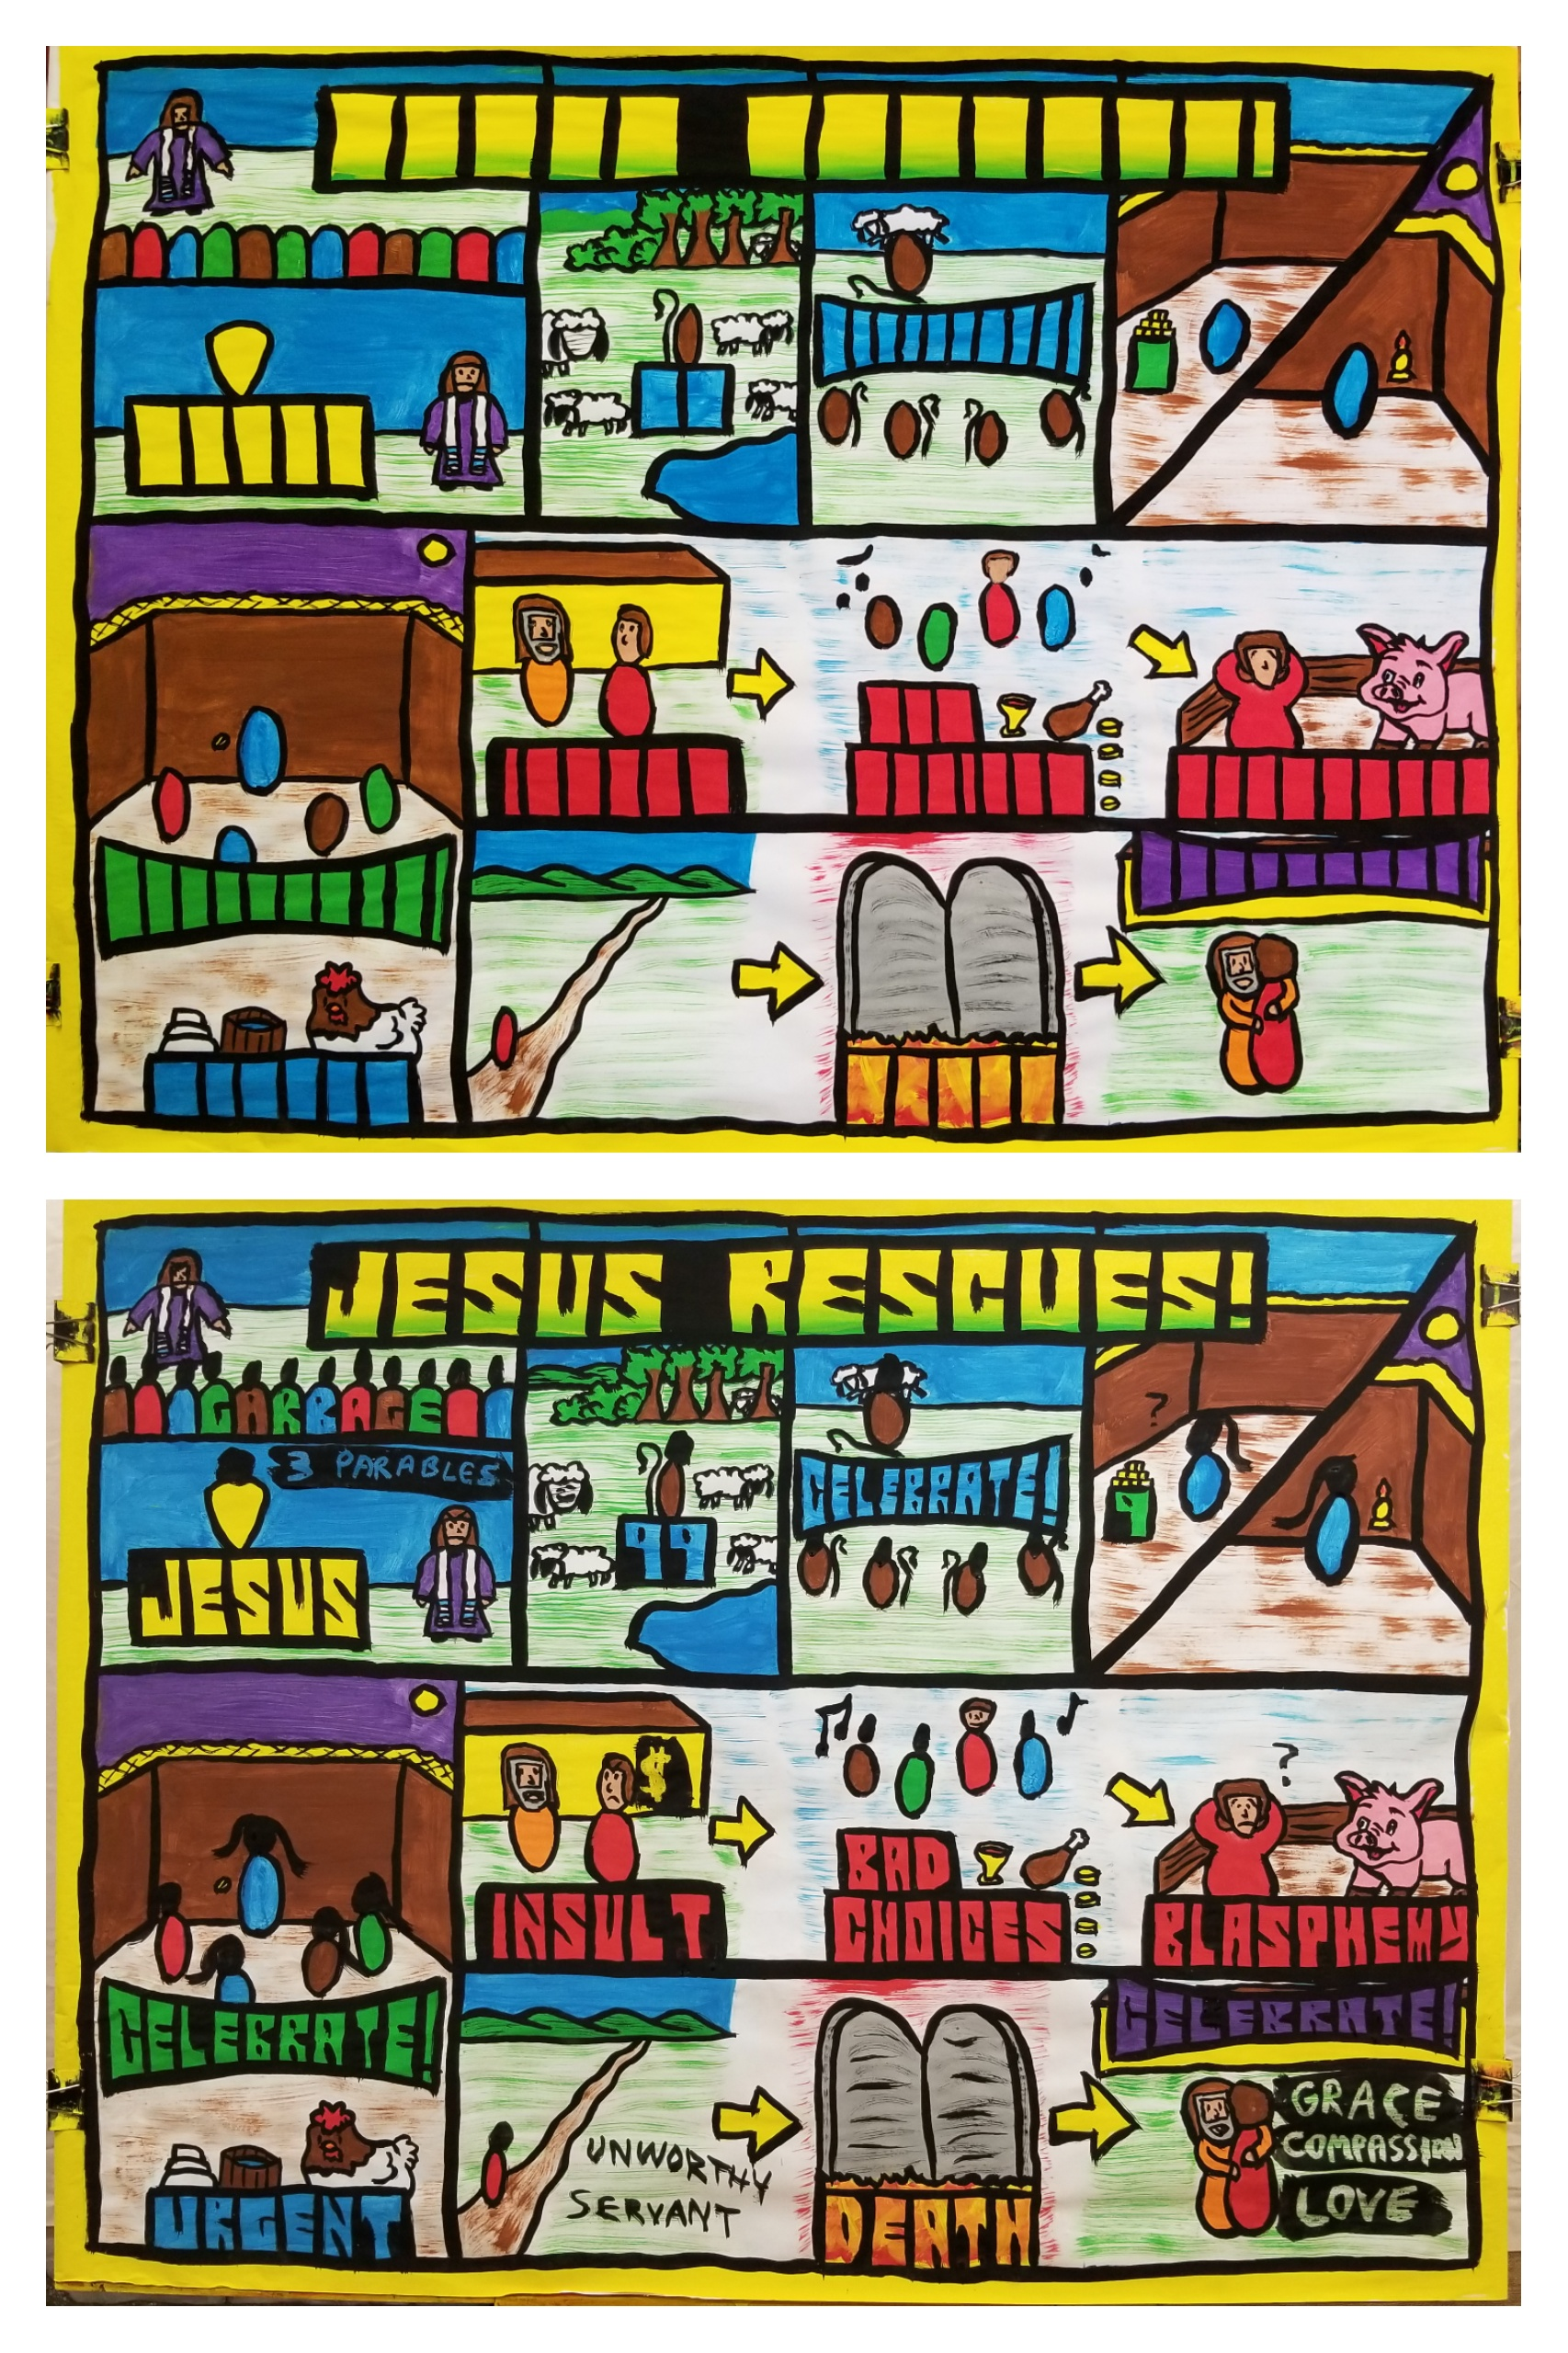 VBS Night #1, 'Jesus Rescues,' from Luke, chapter 15. The Pharisees looked down on people they deemed to be too sinful. Jesus taught 3 parables to shame them and teach them that God enjoys rescuing people. The parable of the lost sheep teaches us that God cares about everyone. The parable of the lost coin teaches that there is an urgency in God's rescuing, and the parable of the Prodigal Son teaches that no matter how sinful you are, God enjoys showing grace, compassion, and love. The kids were great and paid attention so well!